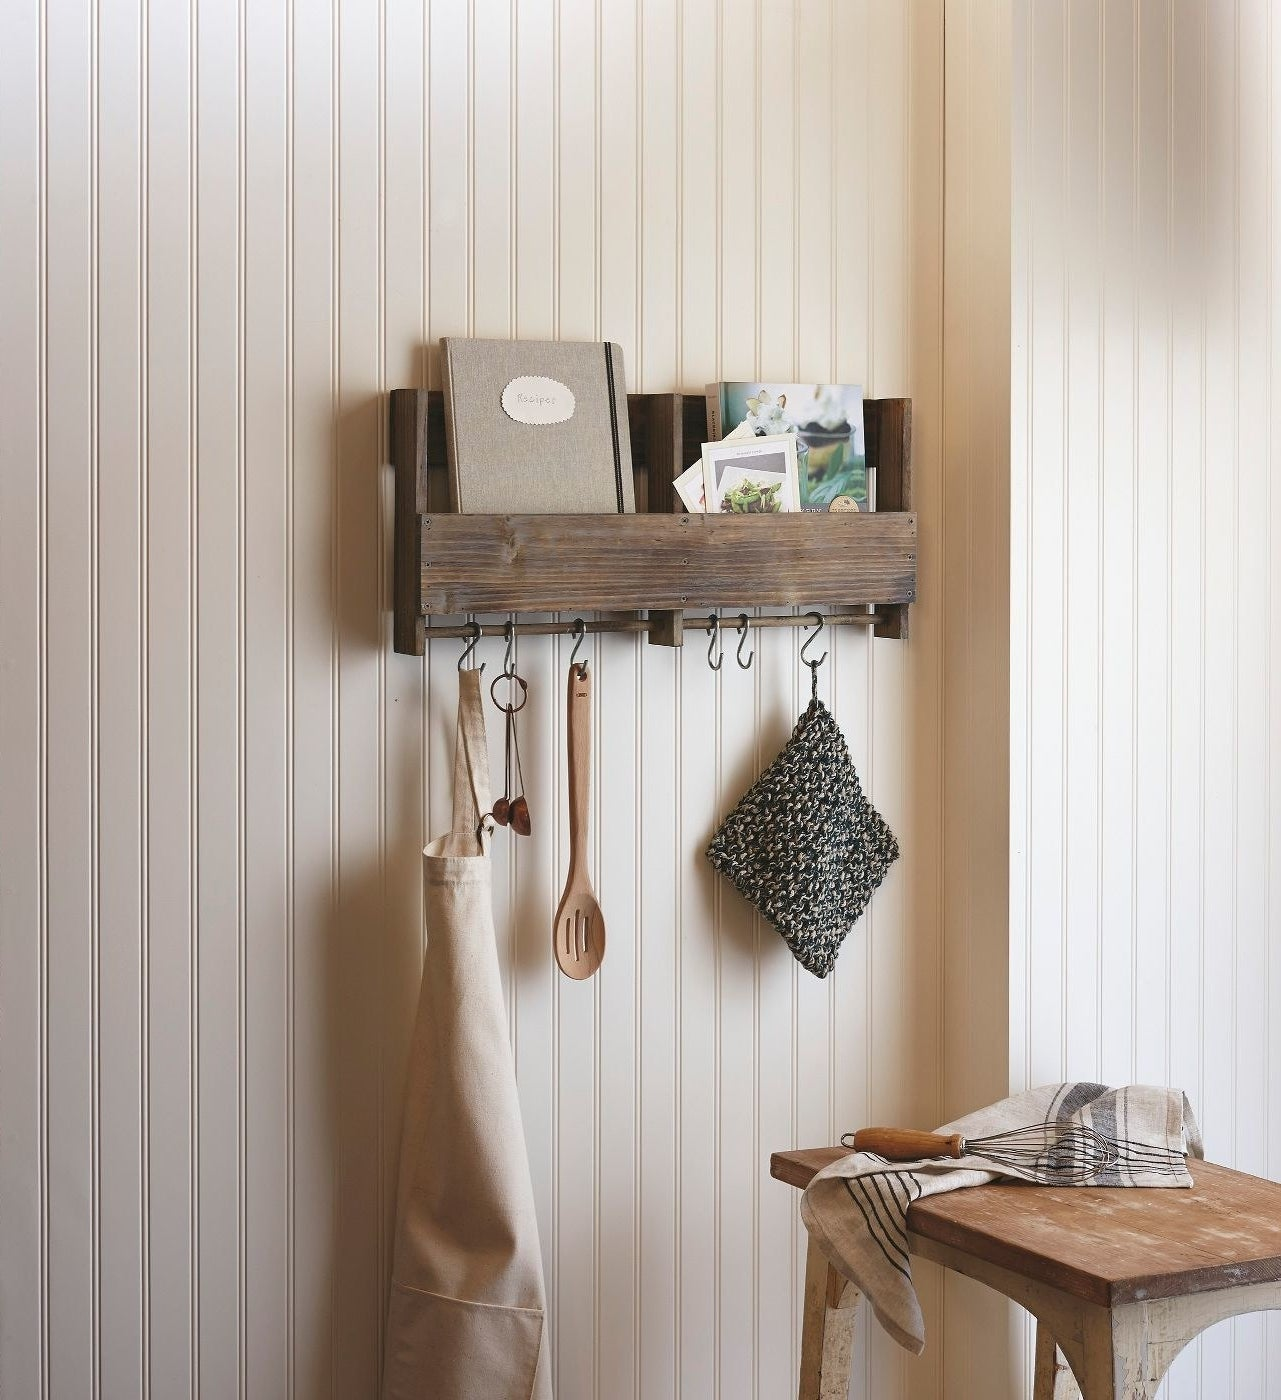 A wooden shelf with two sections in brown and a bar across the bottom with six s-hooks with random kitchen things hung on them